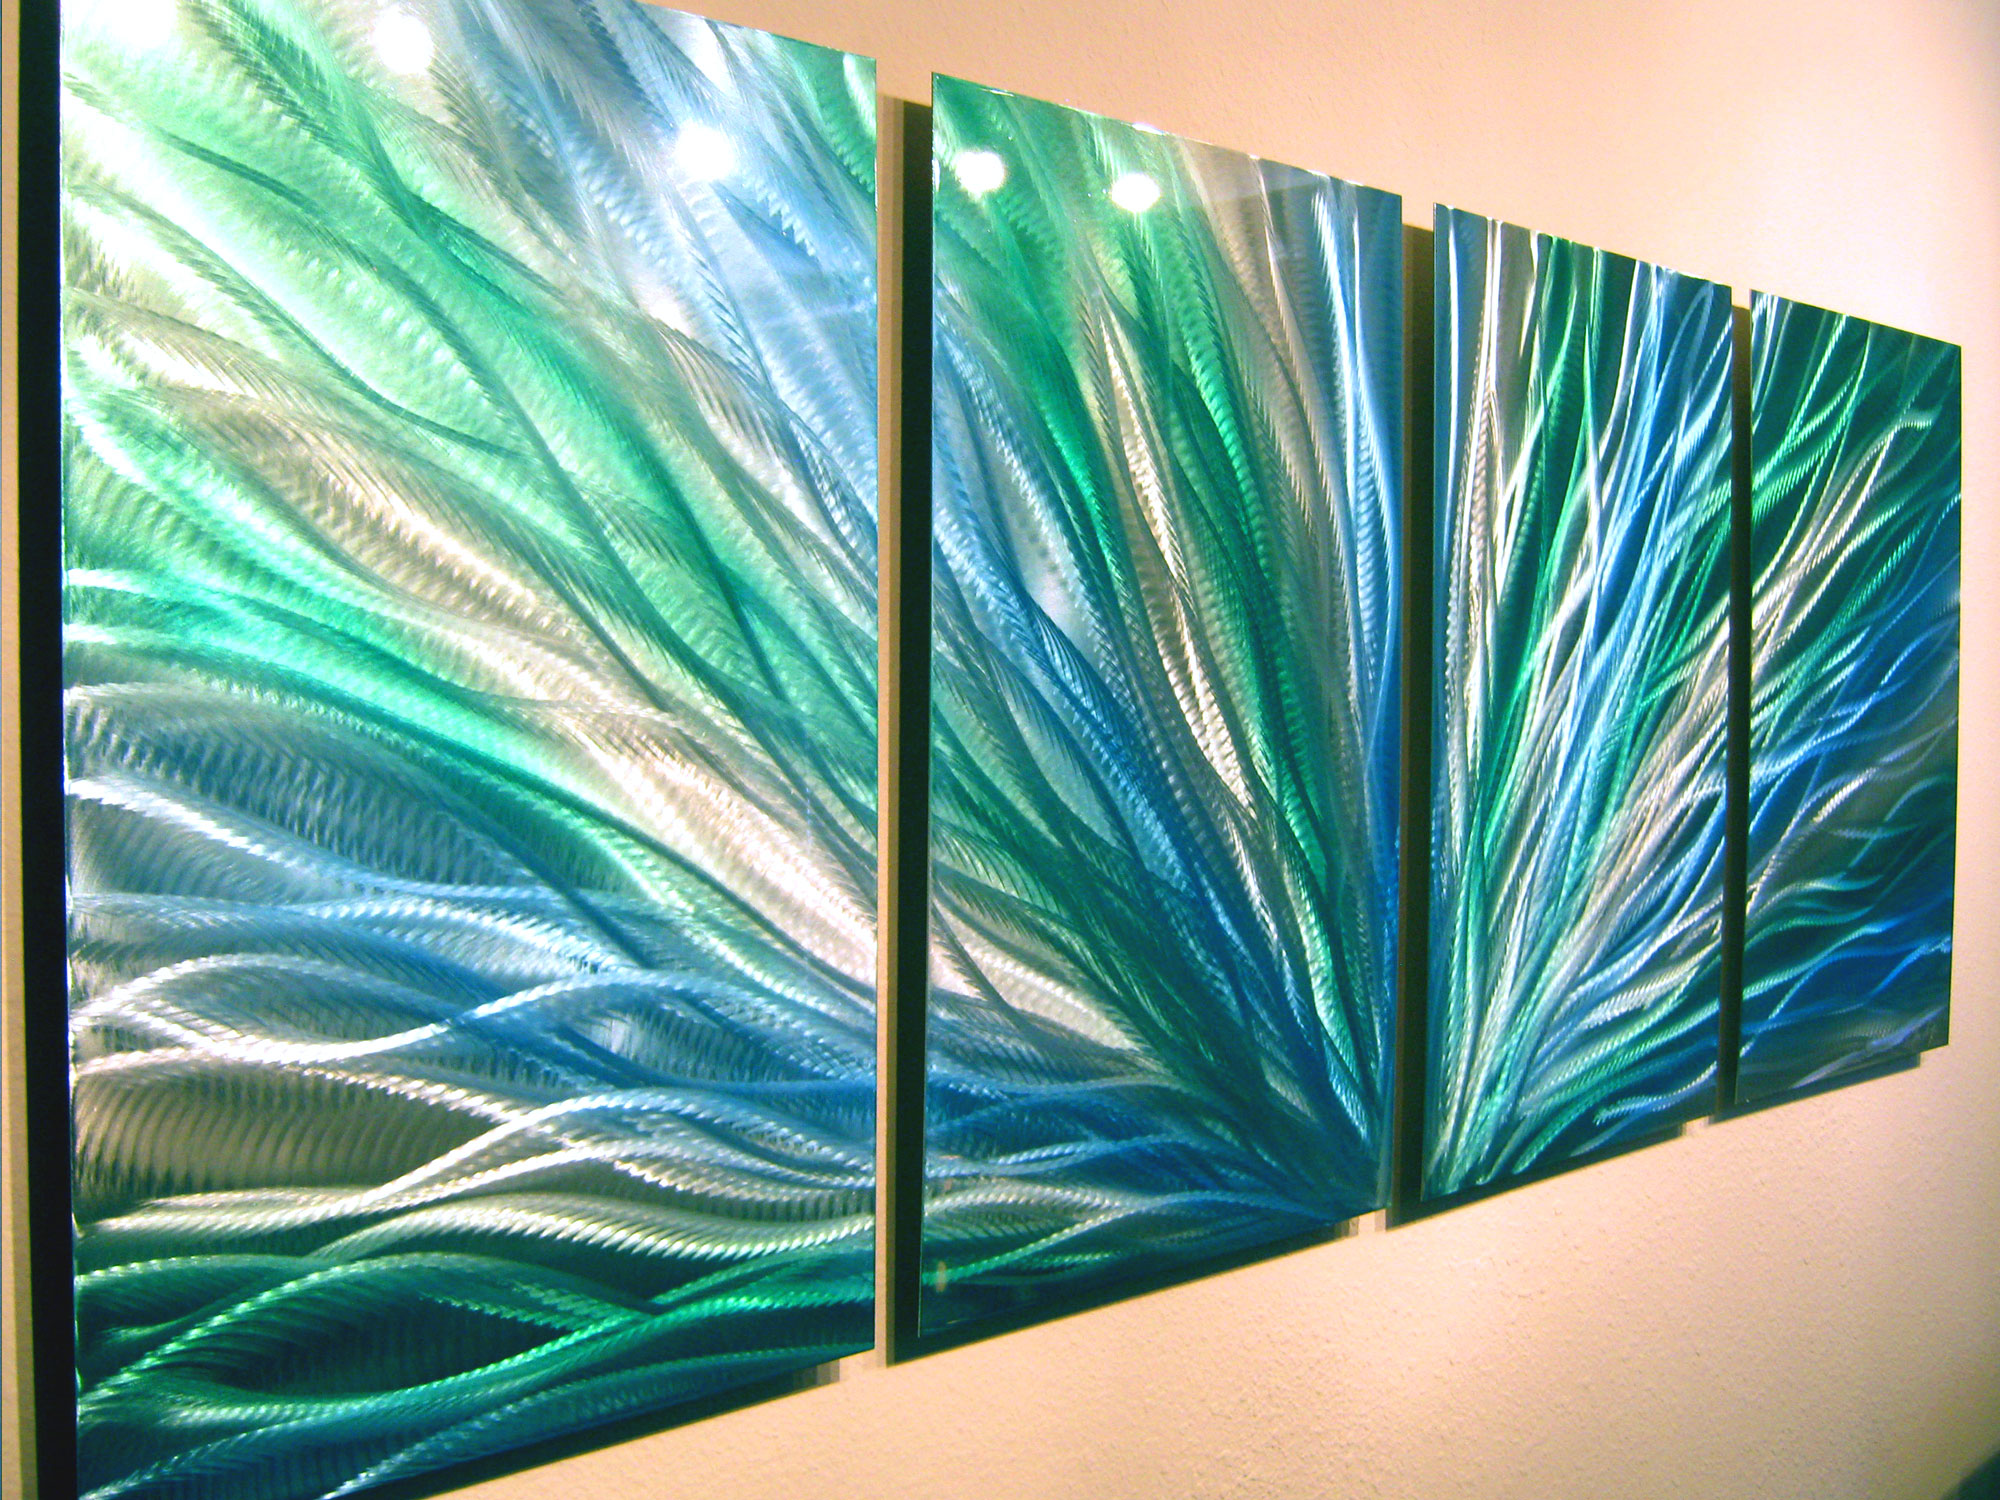 Blue Metal Wall Art Alluring Radiance Blue Green Abstract Metal Wall Art Contemporary Modern Design Inspiration